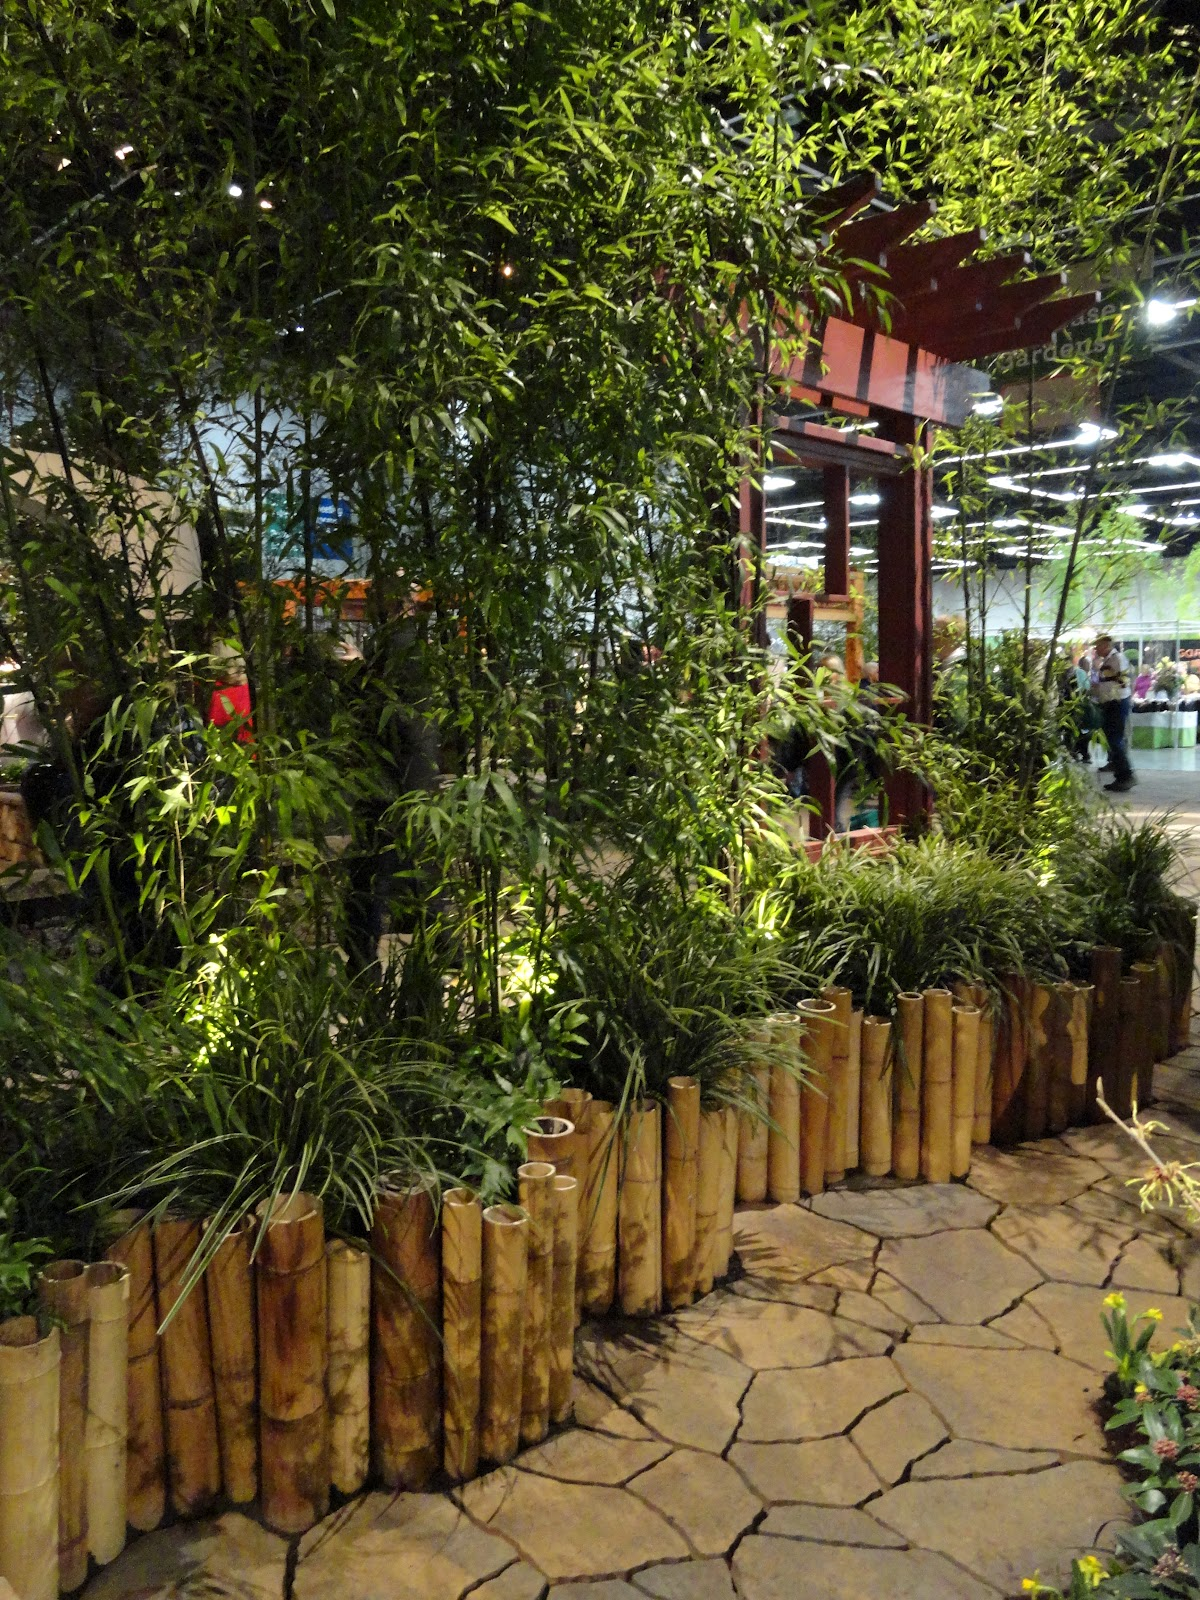 The 2012 Portland Yard, Garden And Patio Show: Chapter 1